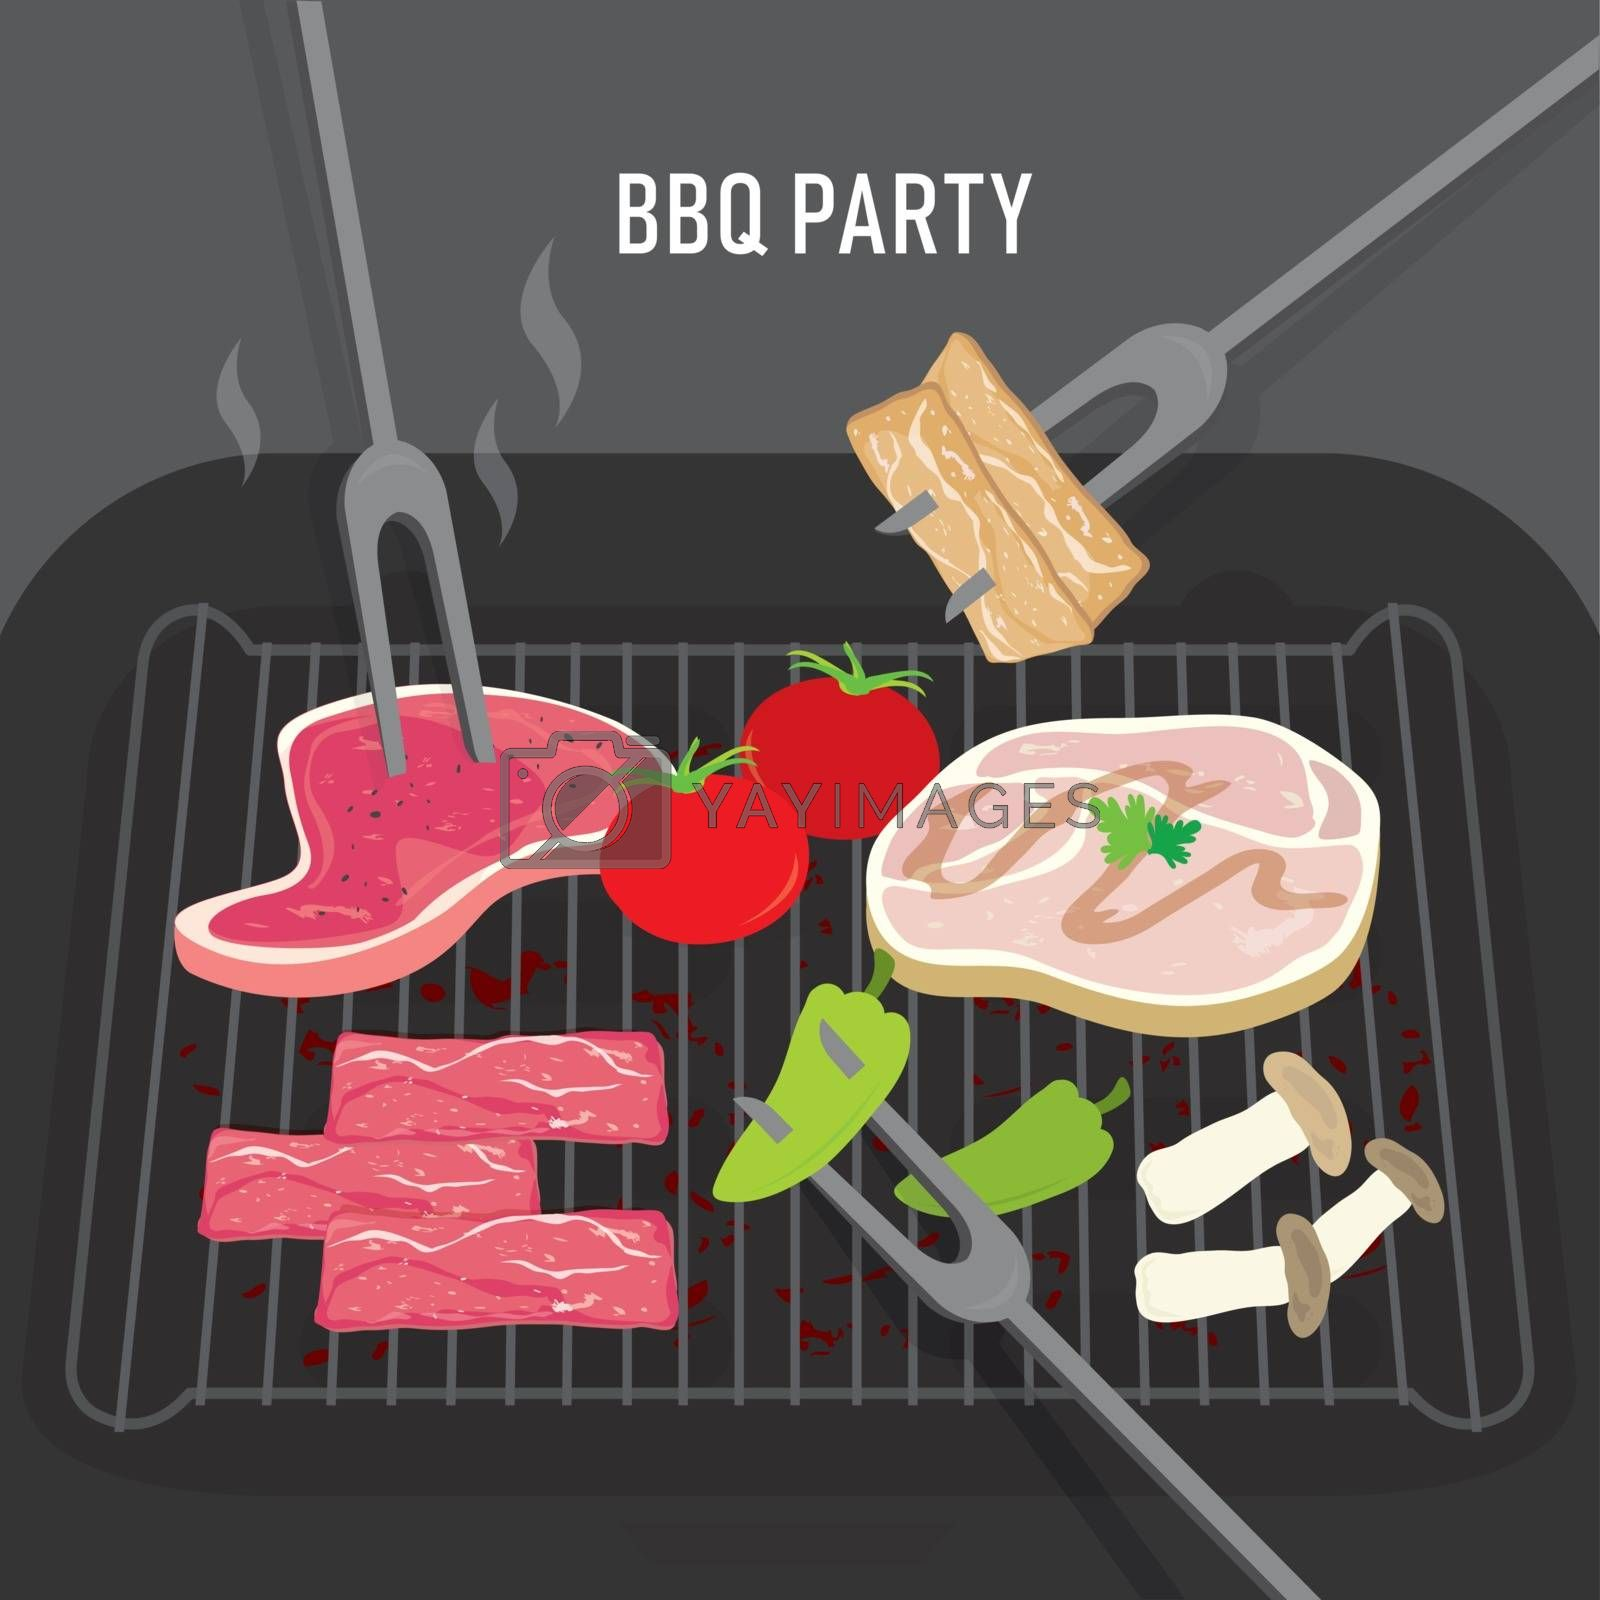 Set of Barbeque BBQ Grill food for party, beef, pork, meat and vegetables. Cartoon Vector illustration